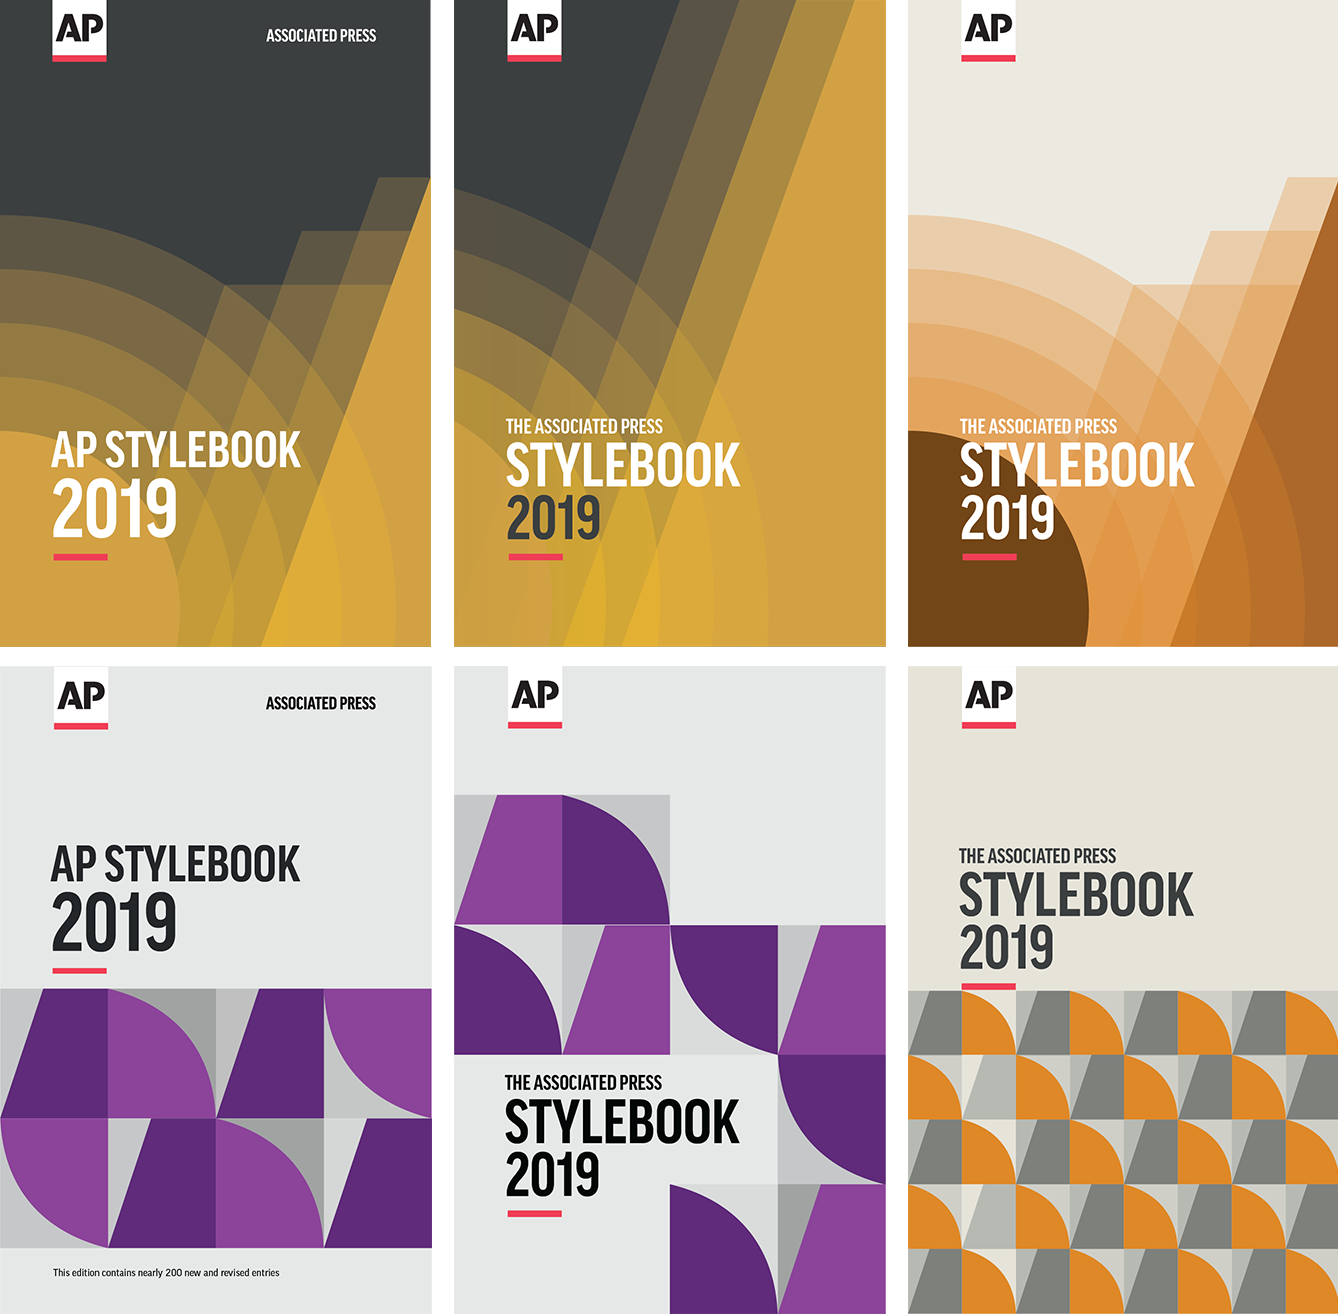 Ap-stylebook-2019-concepts